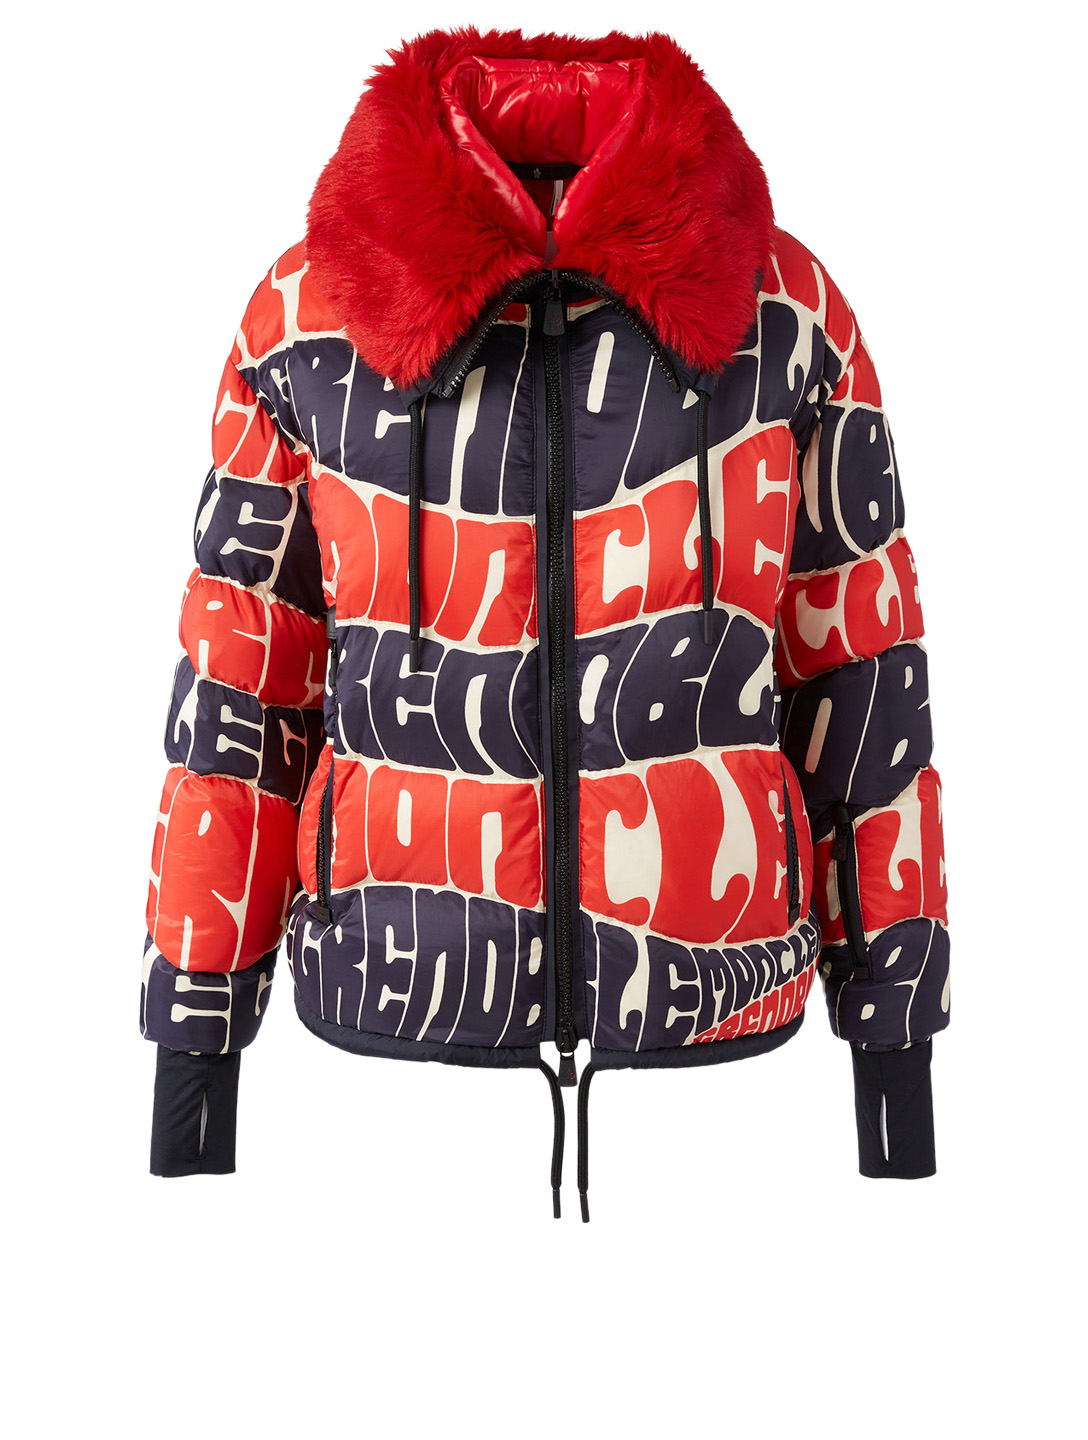 MONCLER GRENOBLE Plaret Down Bomber Jacket In Logo Print Plaret Down Bomber Jacket In Logo Print Multi